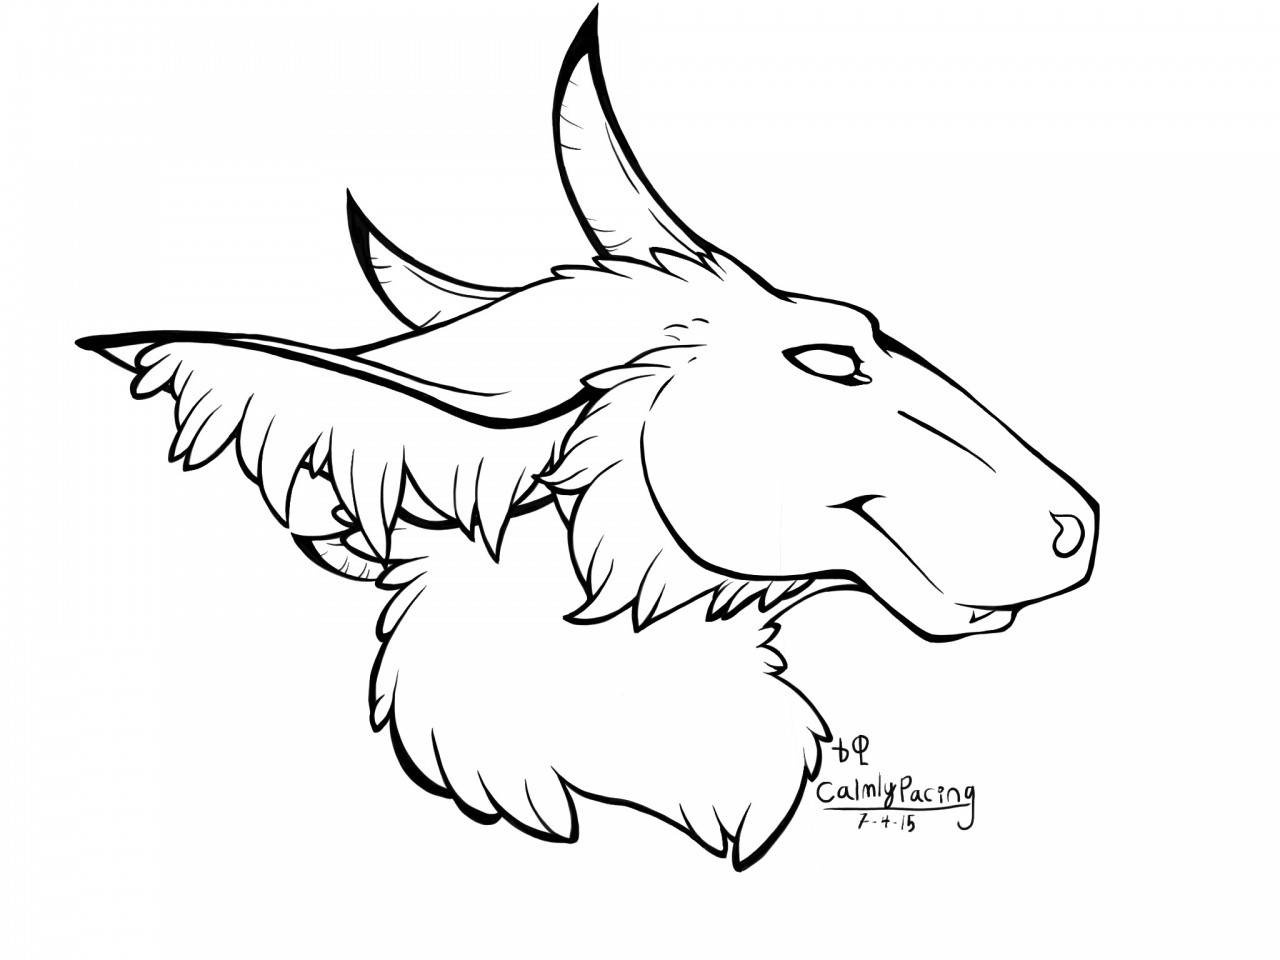 dutch angel dragon coloring pages pin by melina nuzum on fursuits furry drawing art base dutch dragon coloring angel pages